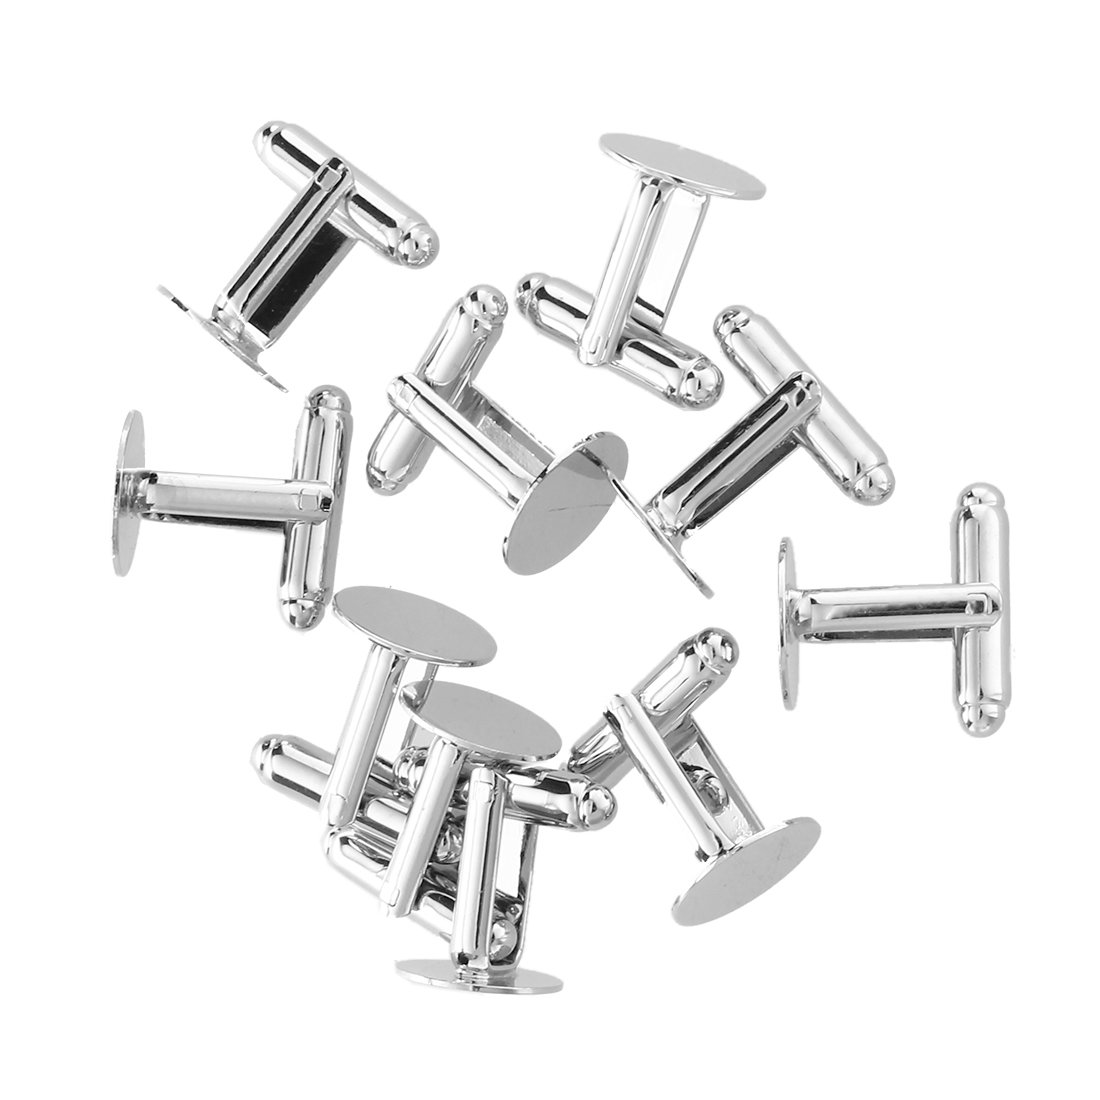 SODIAL(R) 10 Mens Cufflinks Cuff Link Backs Blanks Findings 13mm HOT by SODIAL(R) (Image #1)